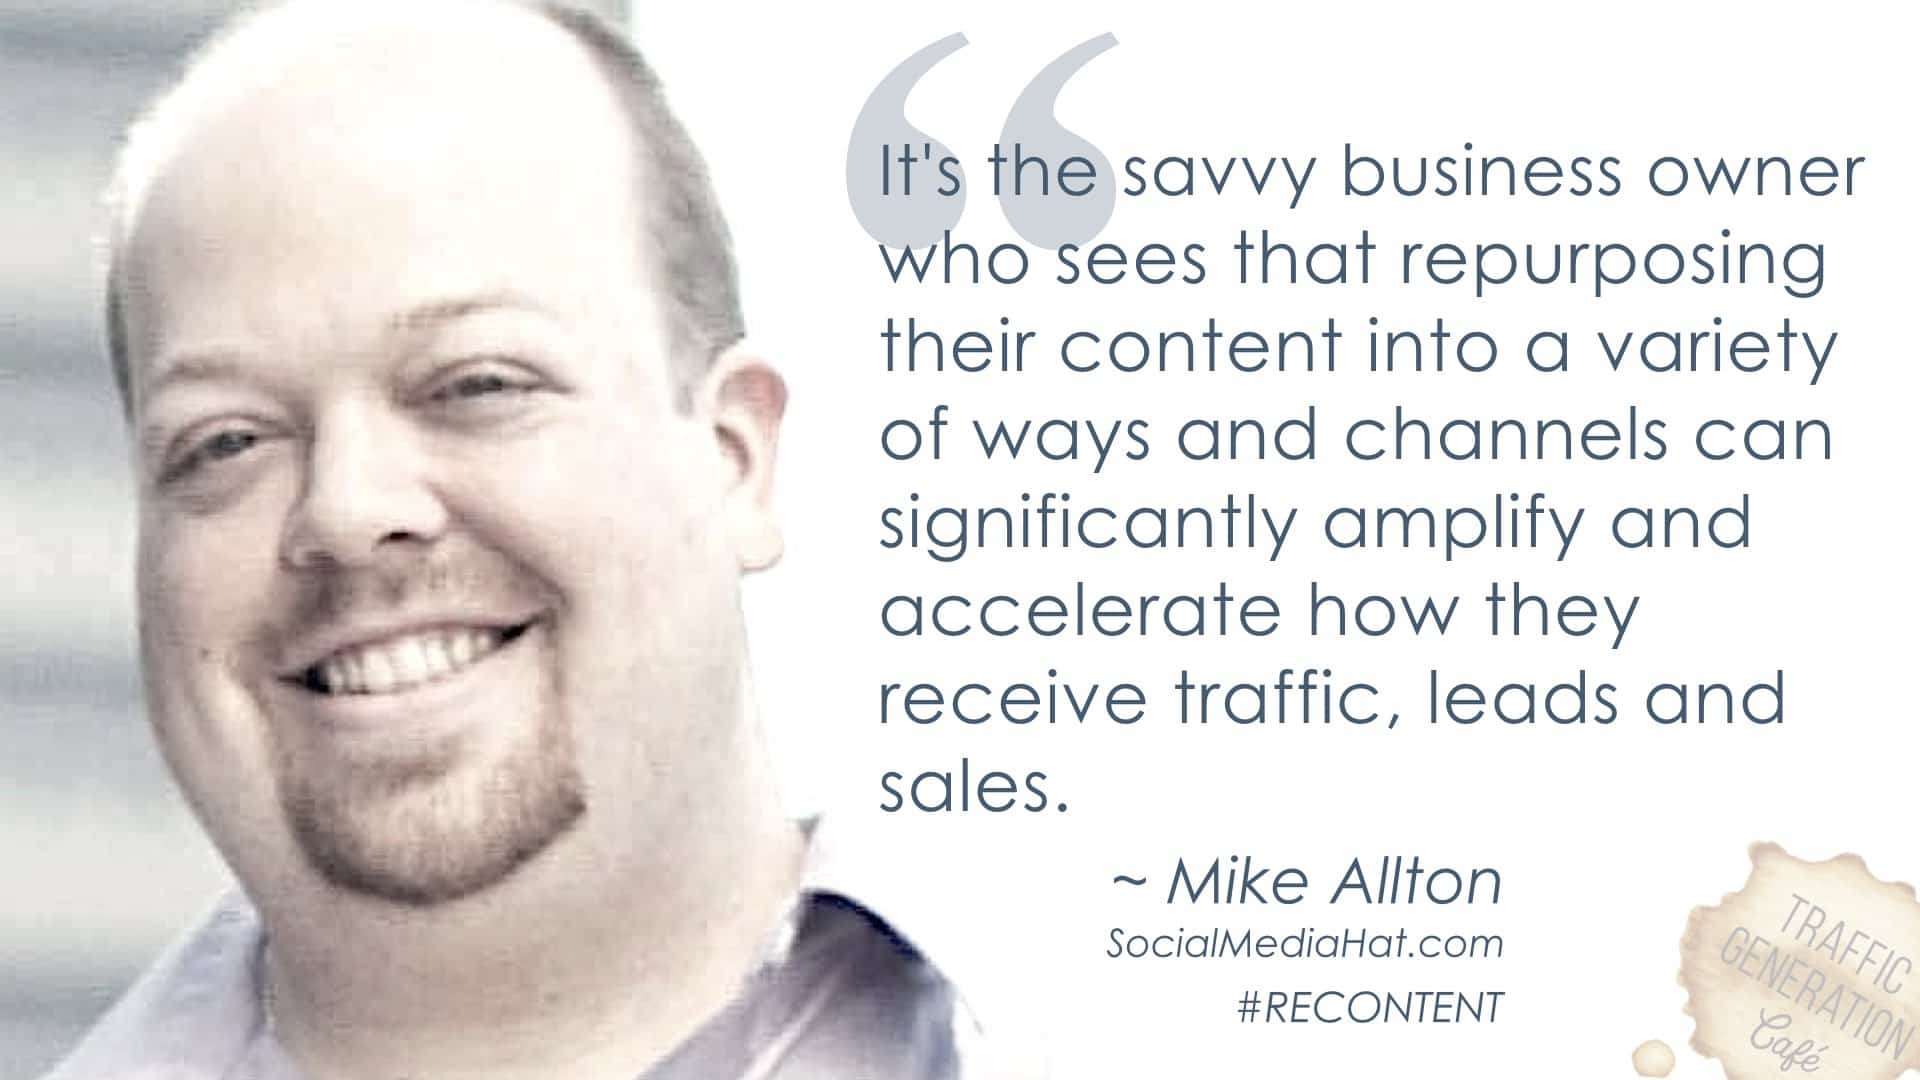 content repurposing by Mike Allton